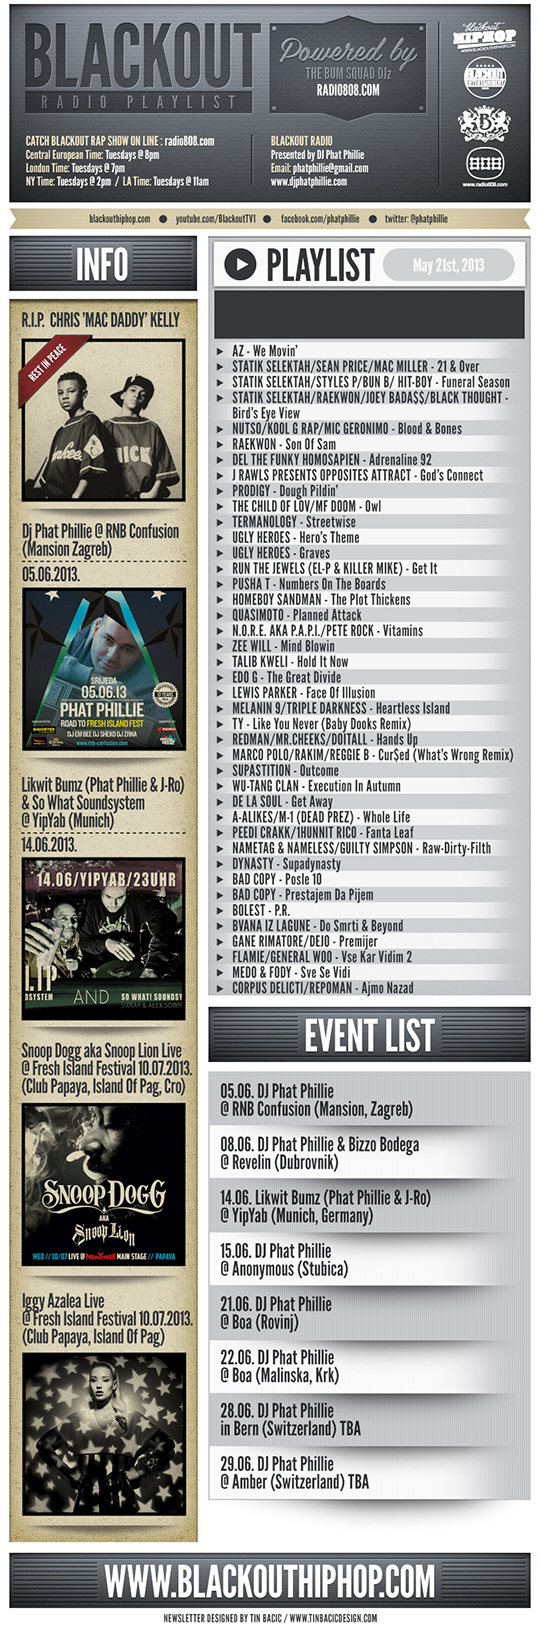 PLAYLIST 21 5 Blackout Radio Playlist & DL Links (May 21st, 2013)